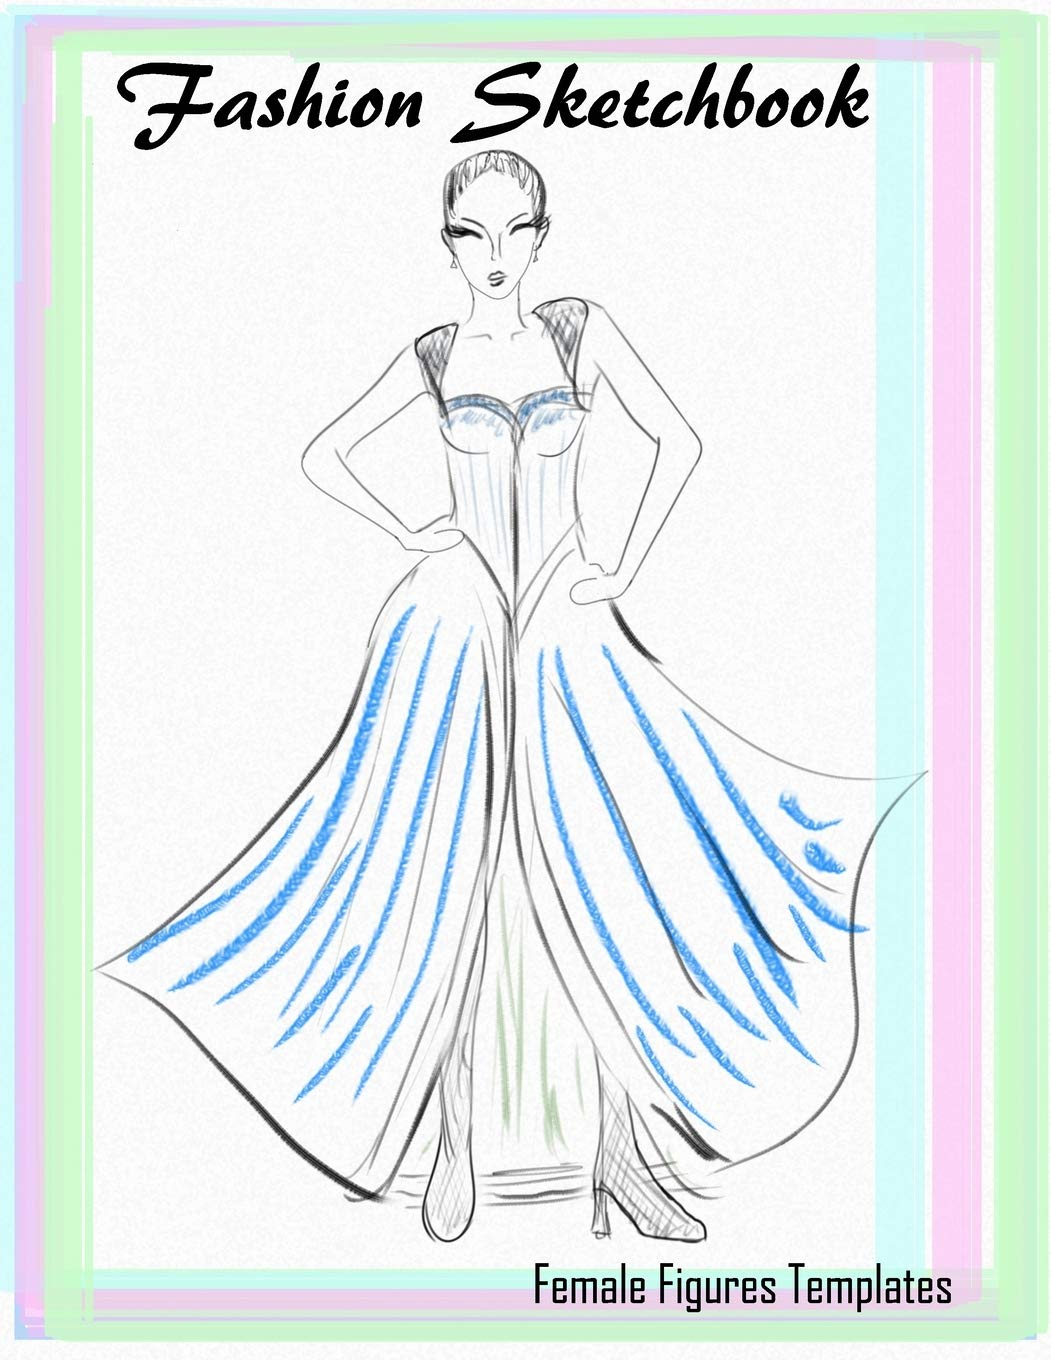 Fashion Illustration Sketchbook Pad Build Your Fashion Portfolio Fashion Designer Must Have Drawing Pad With Ready Female Torso Figure Croquis Template Per Page 8 5x11 The Artz Family 9781089232582 Amazon Com Books